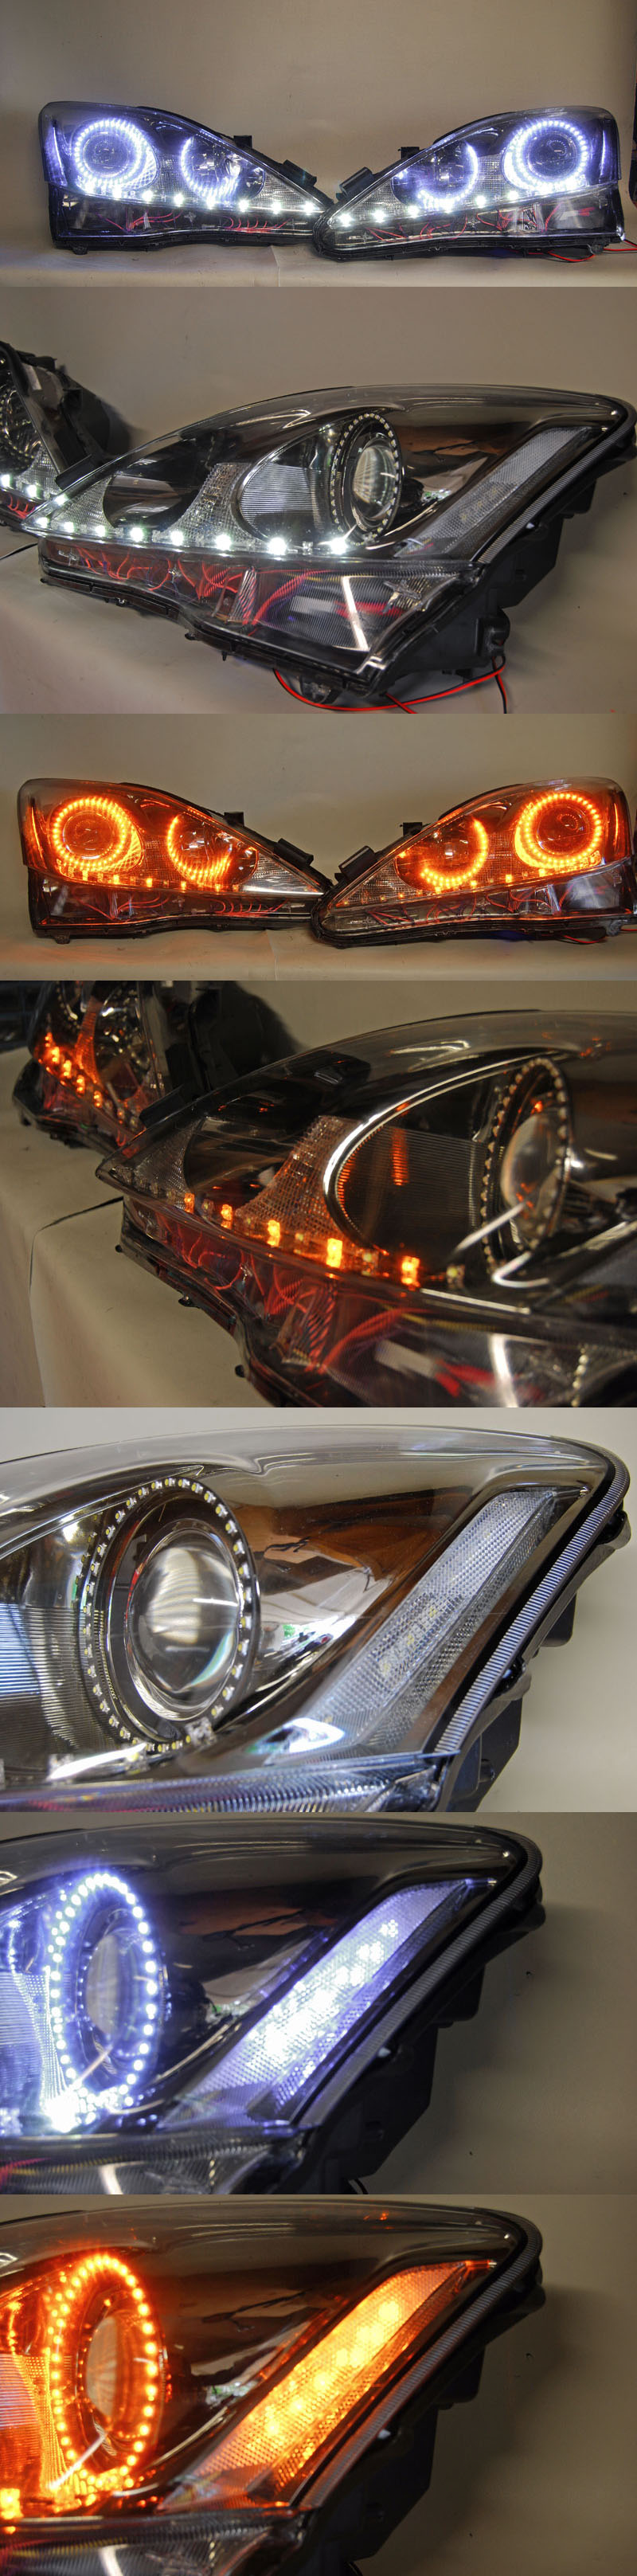 isf drl time led black day projector o fit lexus all headlight head itm lights model